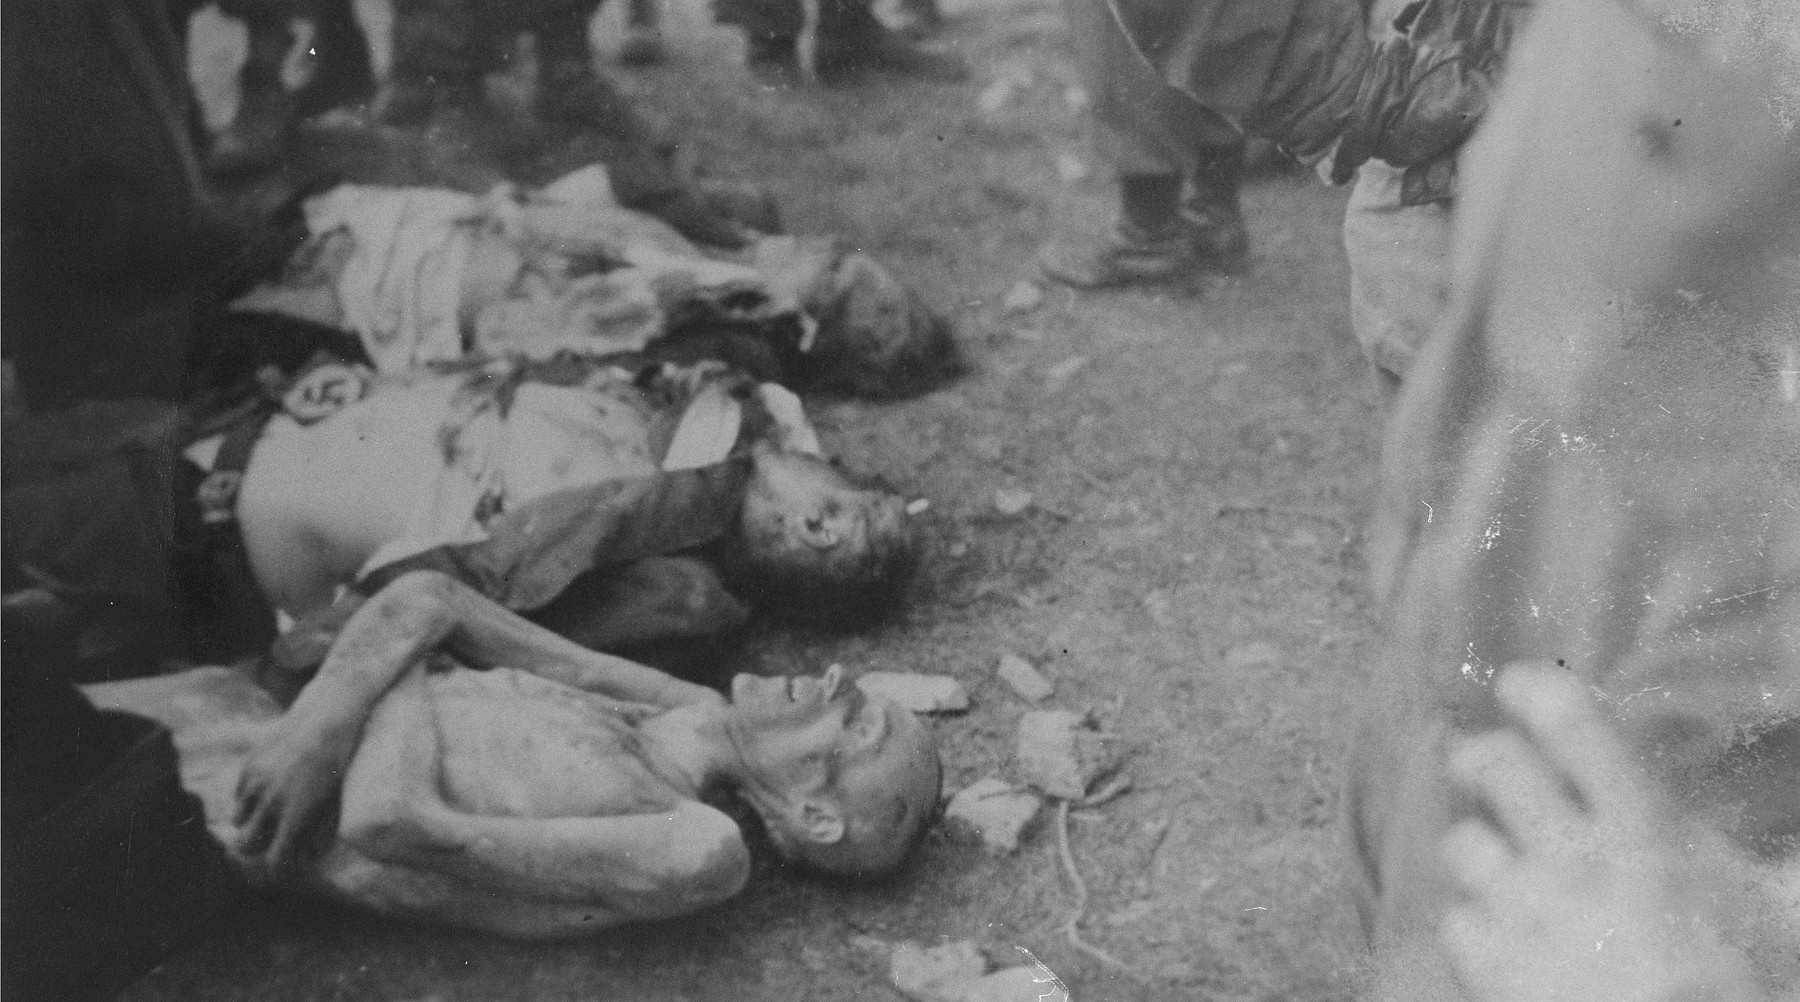 The corpse of a camp guard who was killed by survivors lies between those of prisoners who died in Ohrdruf